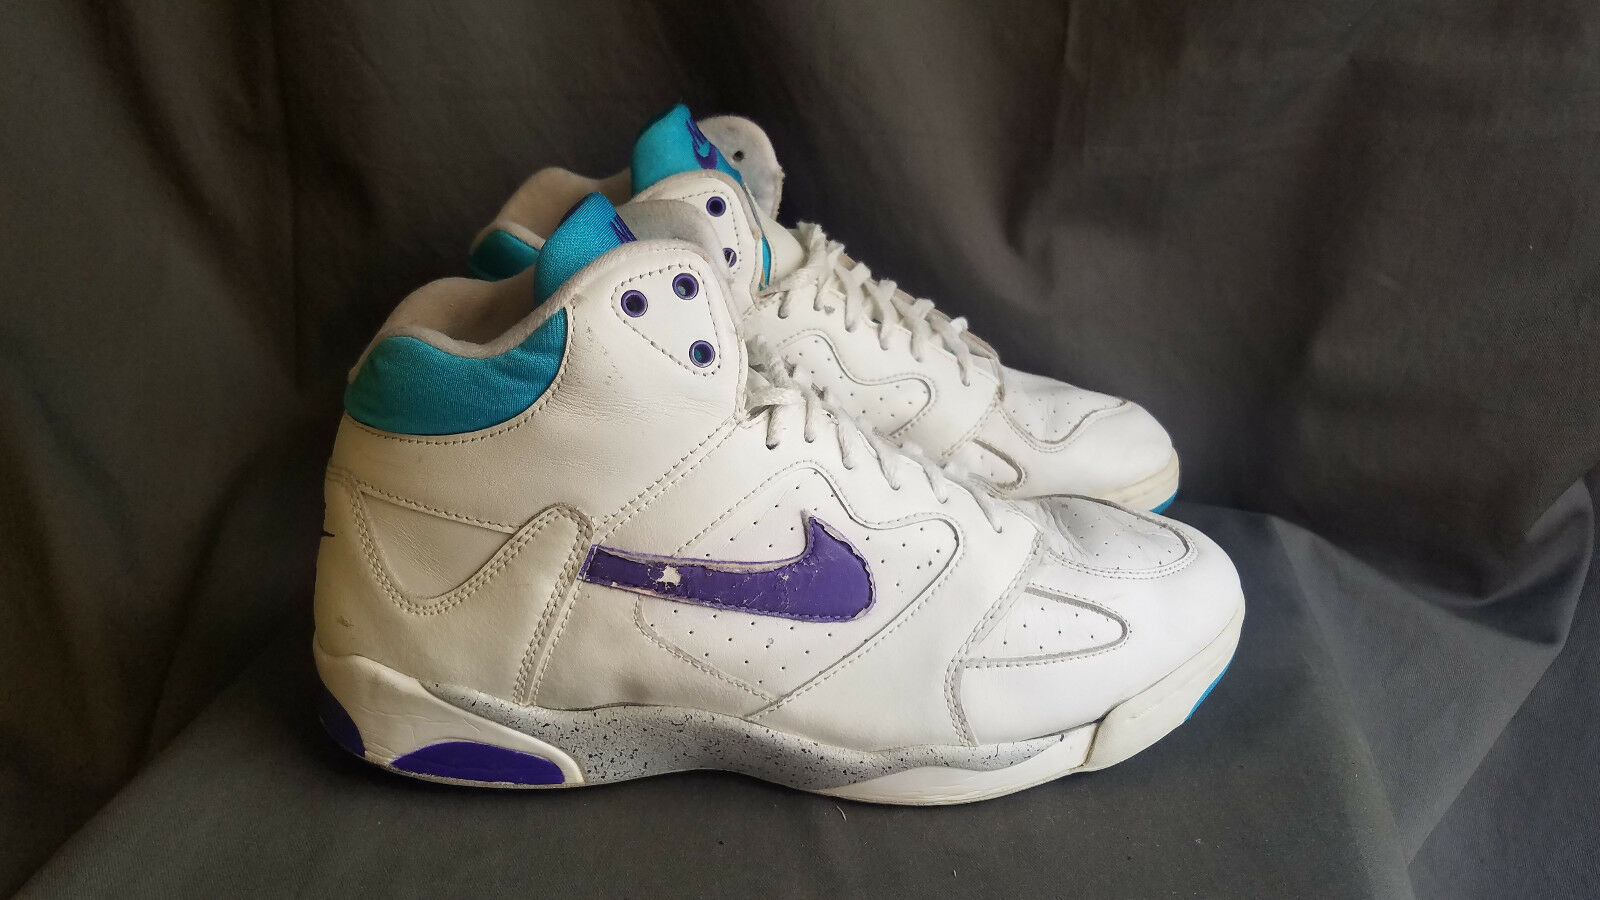 Men's White Leather NIKE AIR 1991 OG Basketball Sneakers Size 11 Made in Taiwan